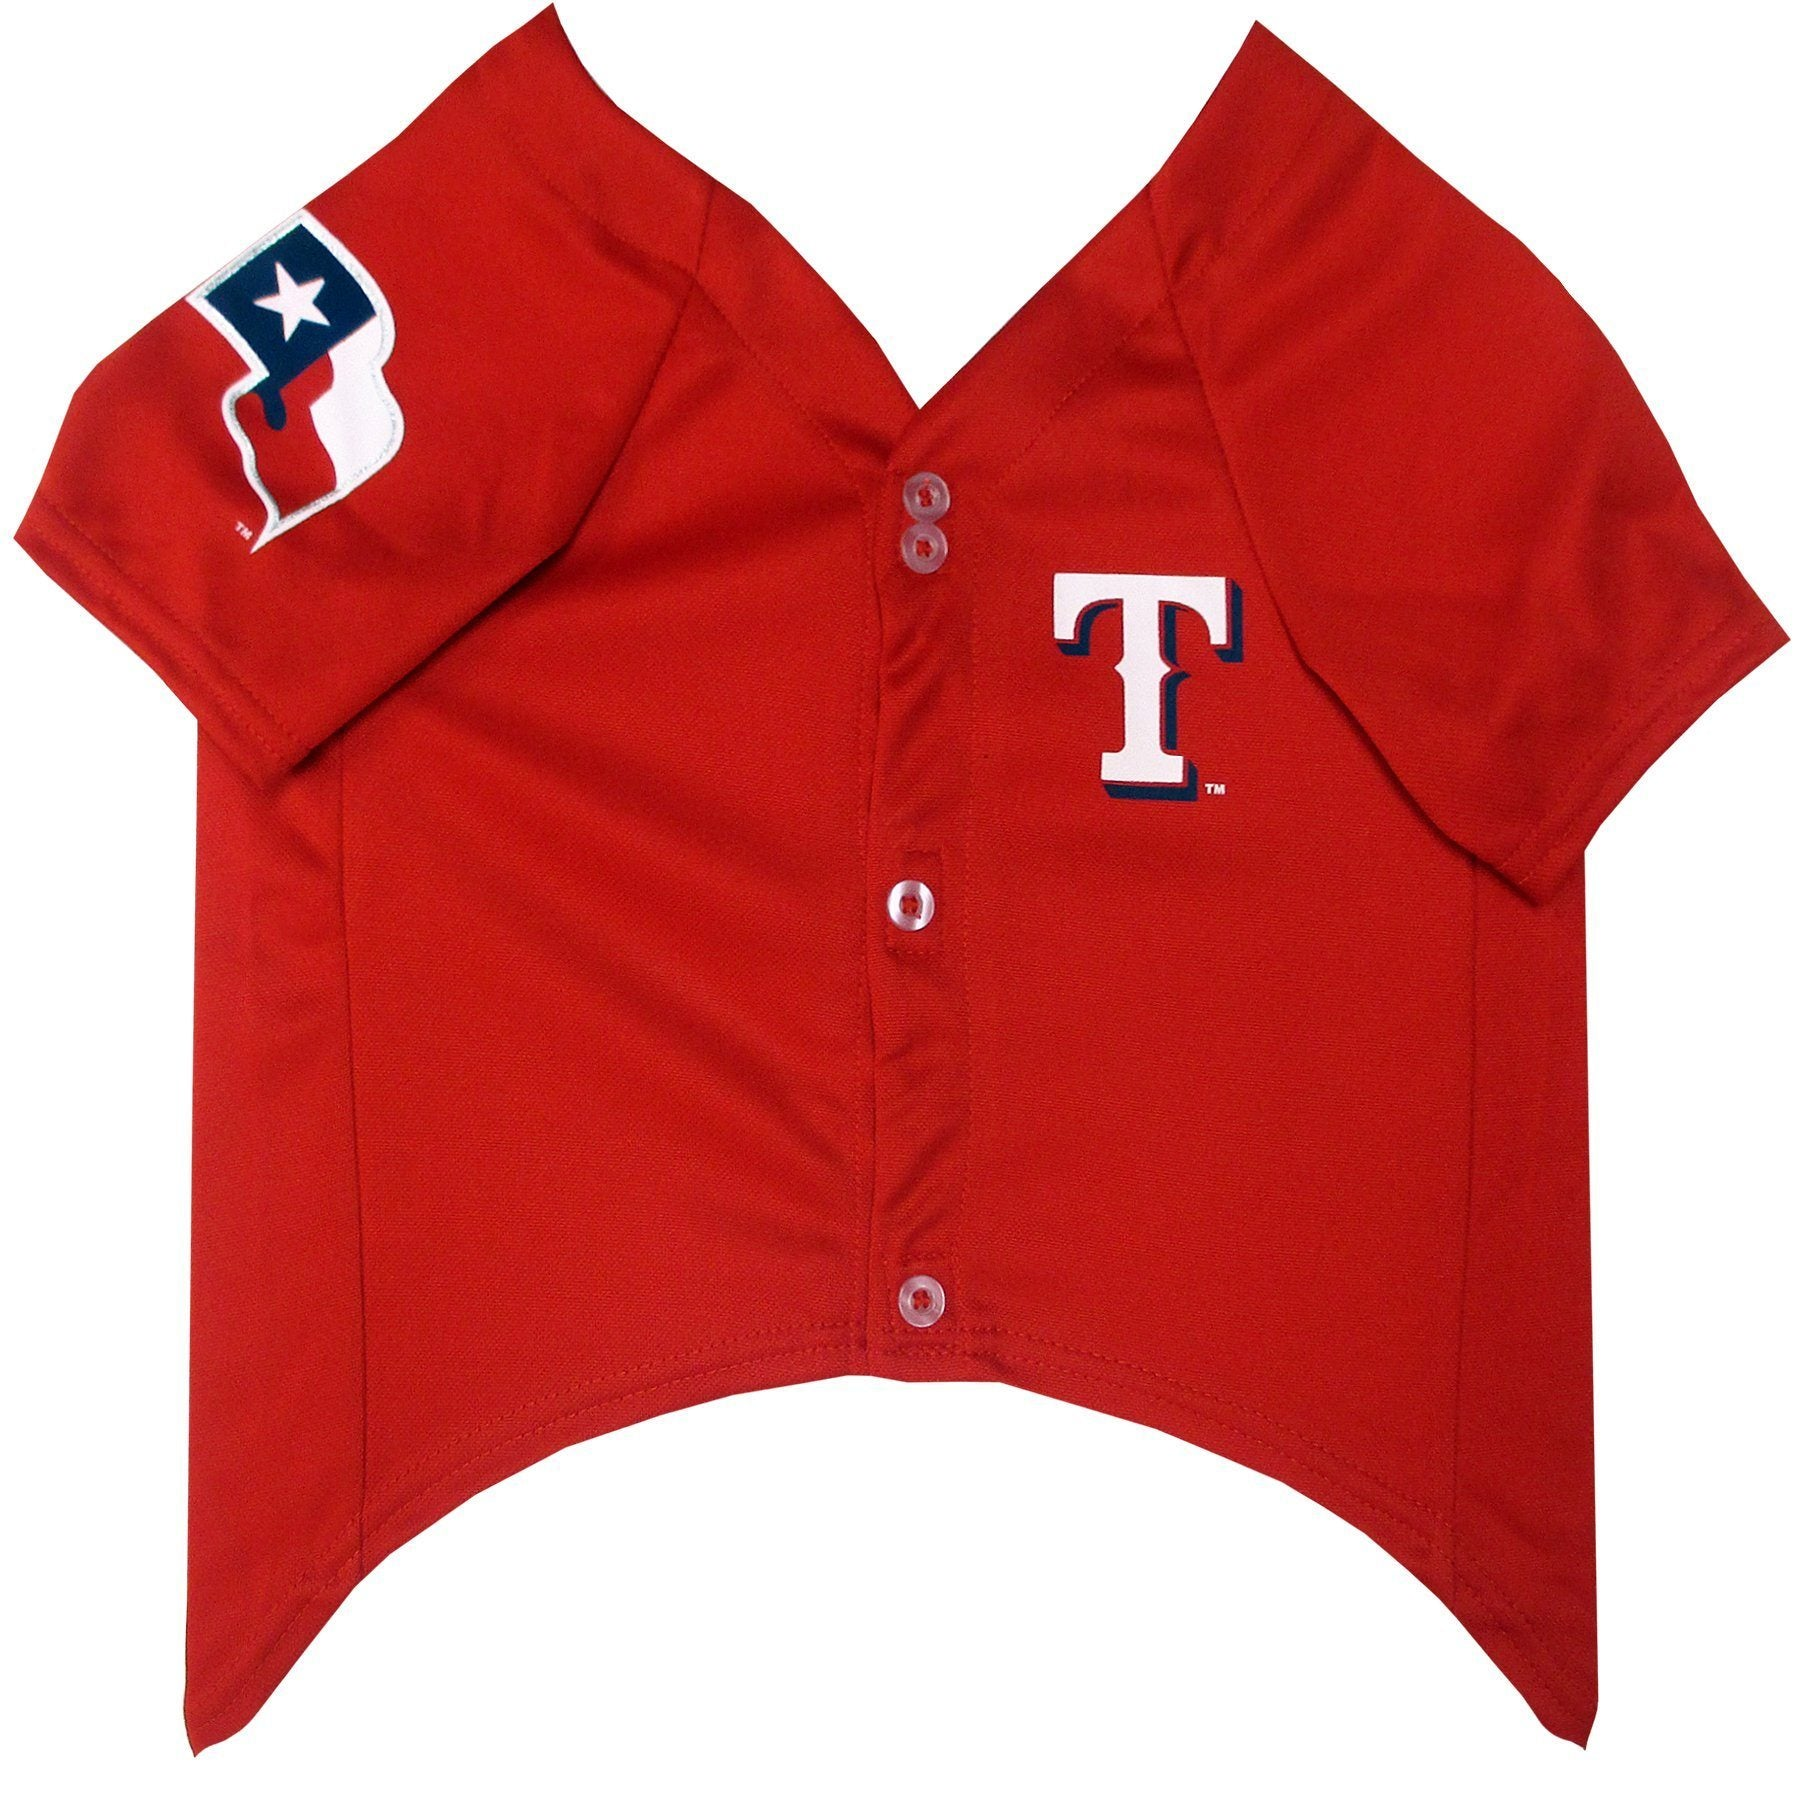 Texas Rangers Puppy Dog Baseball Jersey - Jersey Champs - Custom Basketball, Baseball, Football & Hockey Jerseys